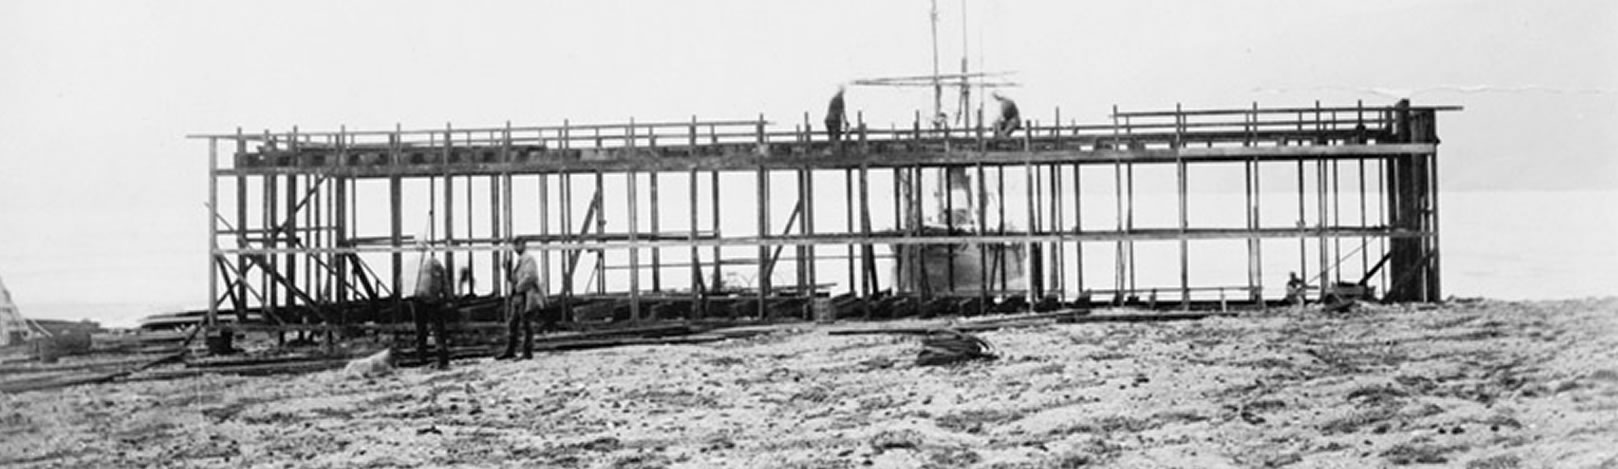 Historic image of Lady Franklin Bay Expedition House under construction. The bow of the Proteus is visible in Discovery Harbor. Two figures stand on the wooden frame of the building. One figure is visible near the sill plate.